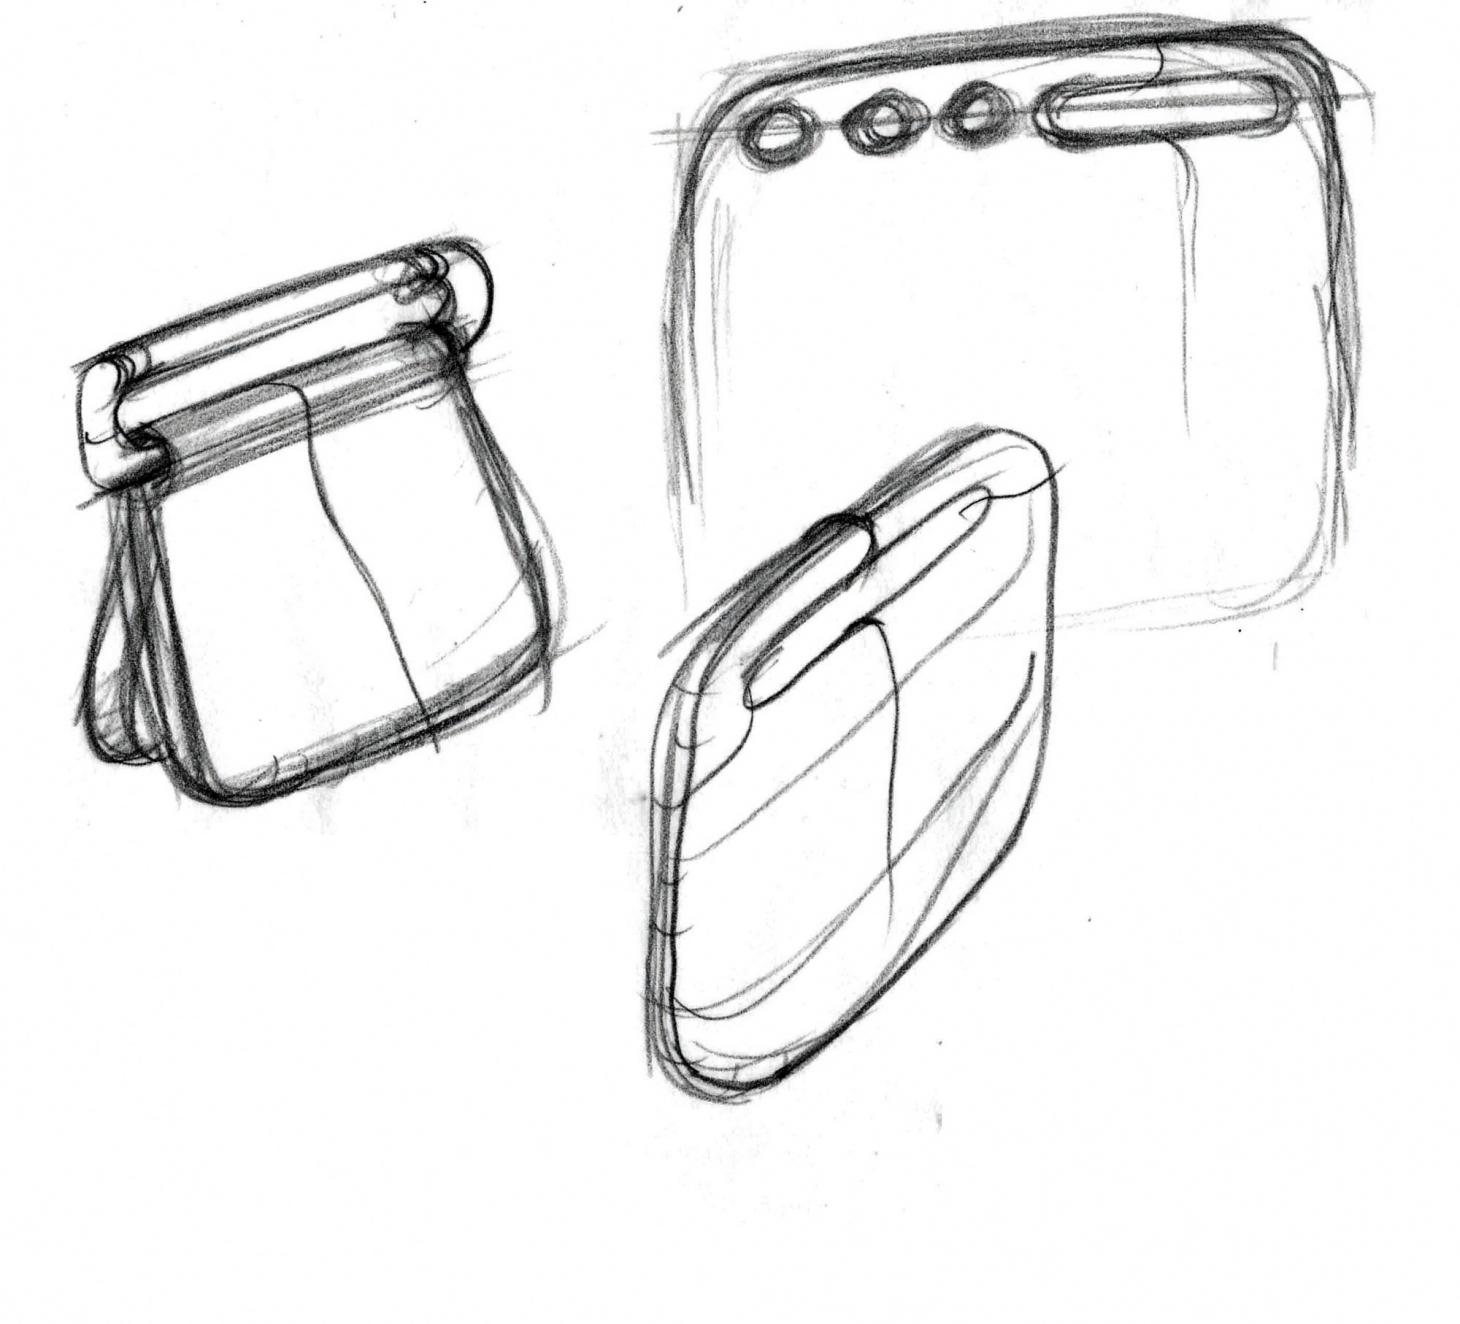 A sketch by Yves Behar of the One Laptop Per Child project